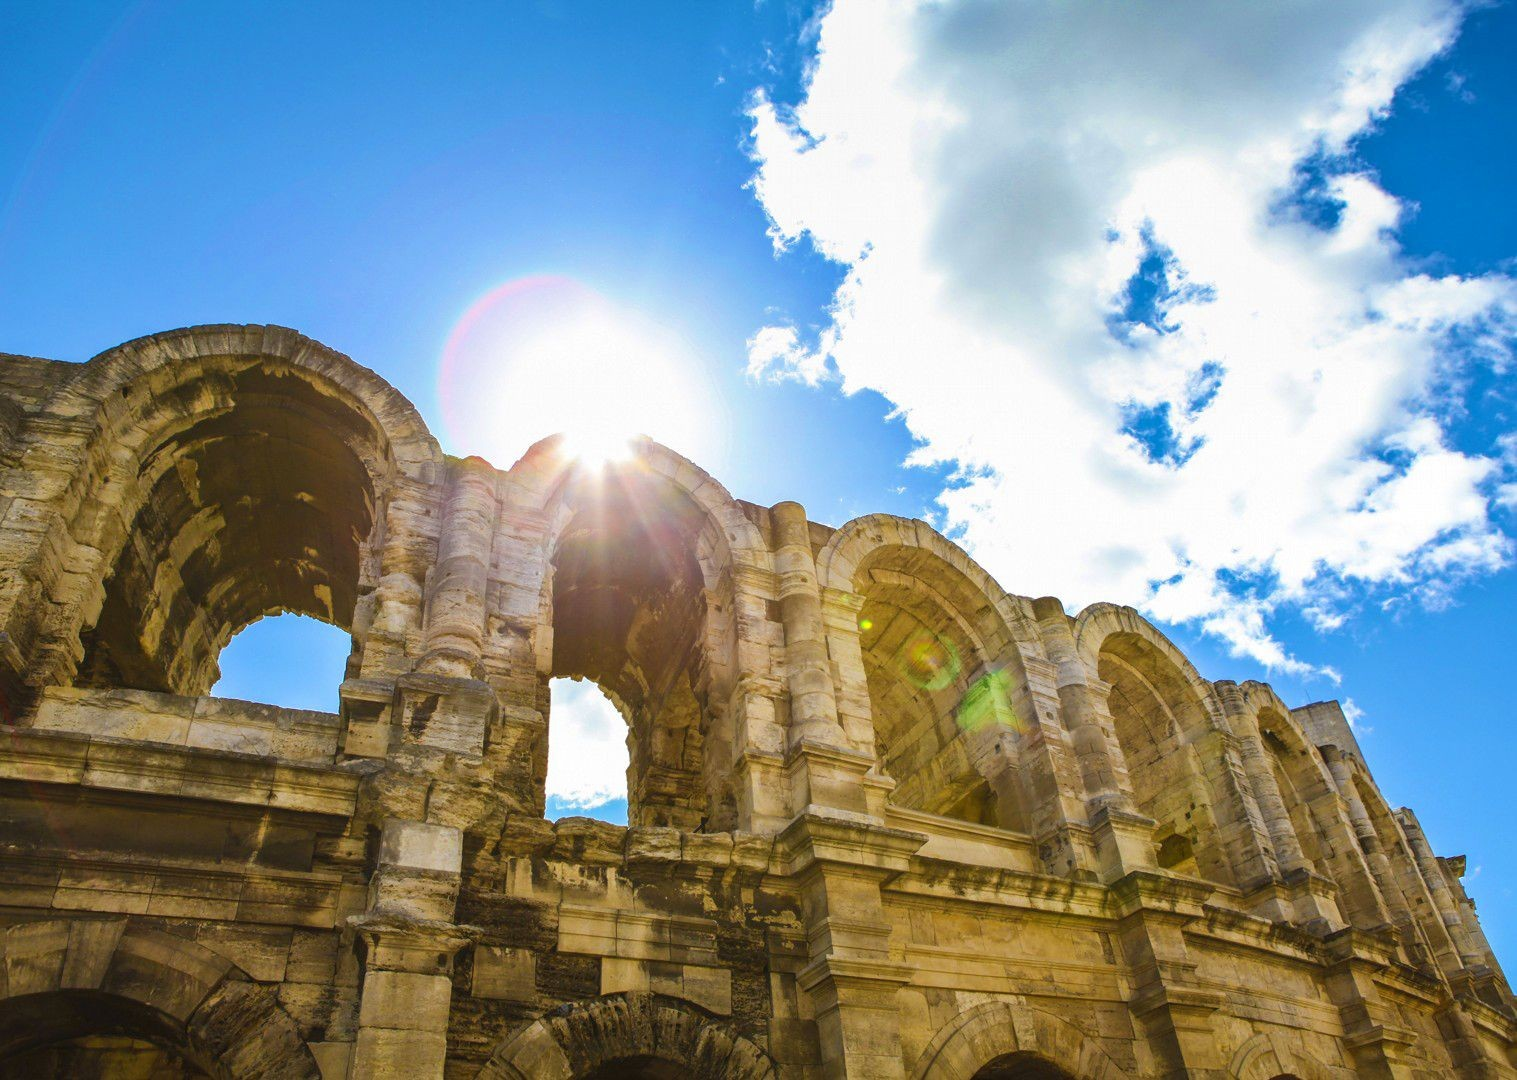 leisure-cycling-tour-arles-amphitheatre-unesco-world-heritage-culture.jpg - France - Provence - Self-Guided Leisure Cycling Holiday - Leisure Cycling